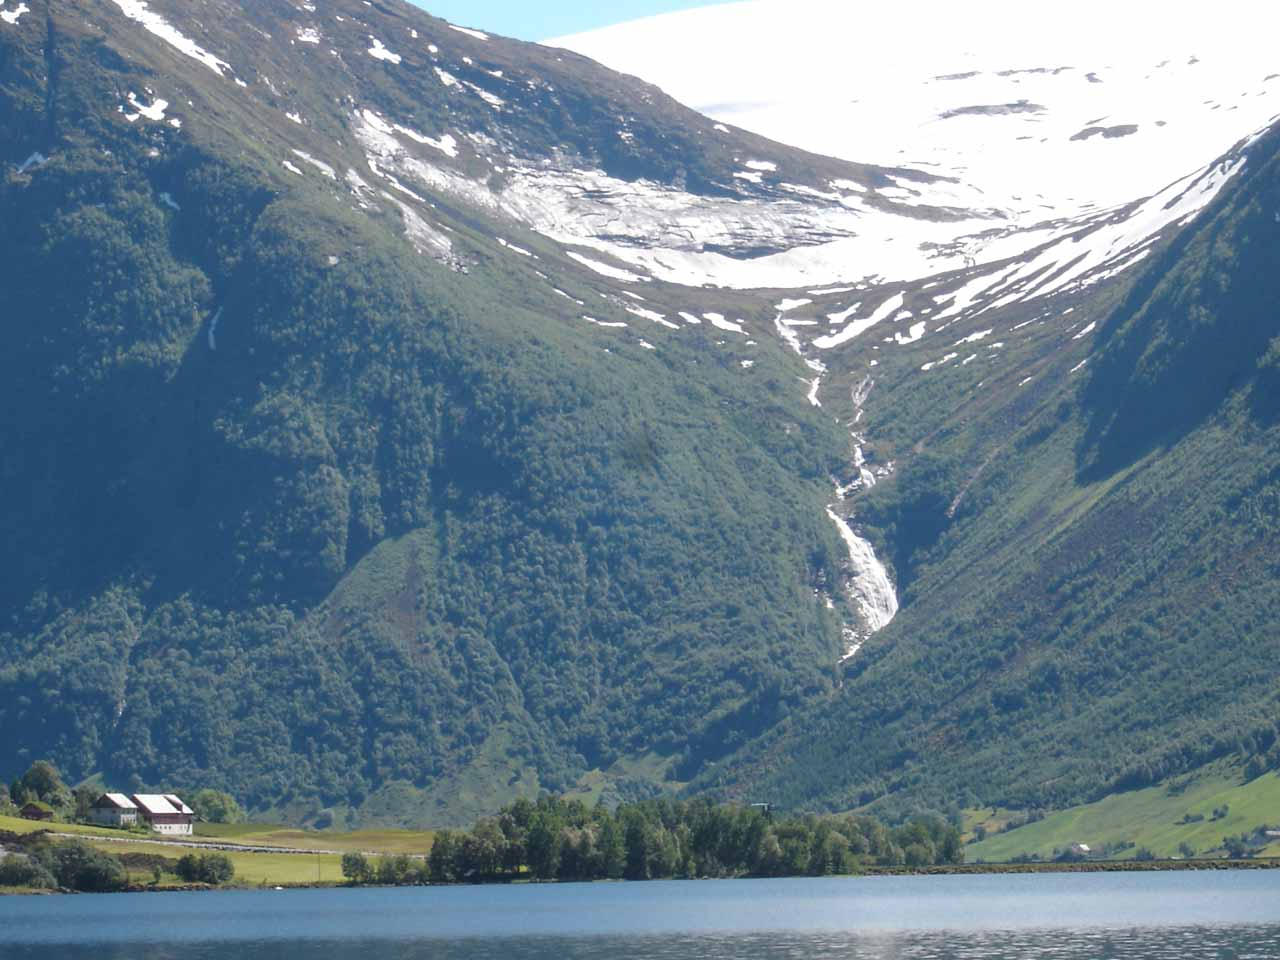 Just 8km on the E39 south of Heggheimsfossen, we also caught a glimpse of this waterfall called Vikafossen, which was right across from the attractive lake Jølstravatnet